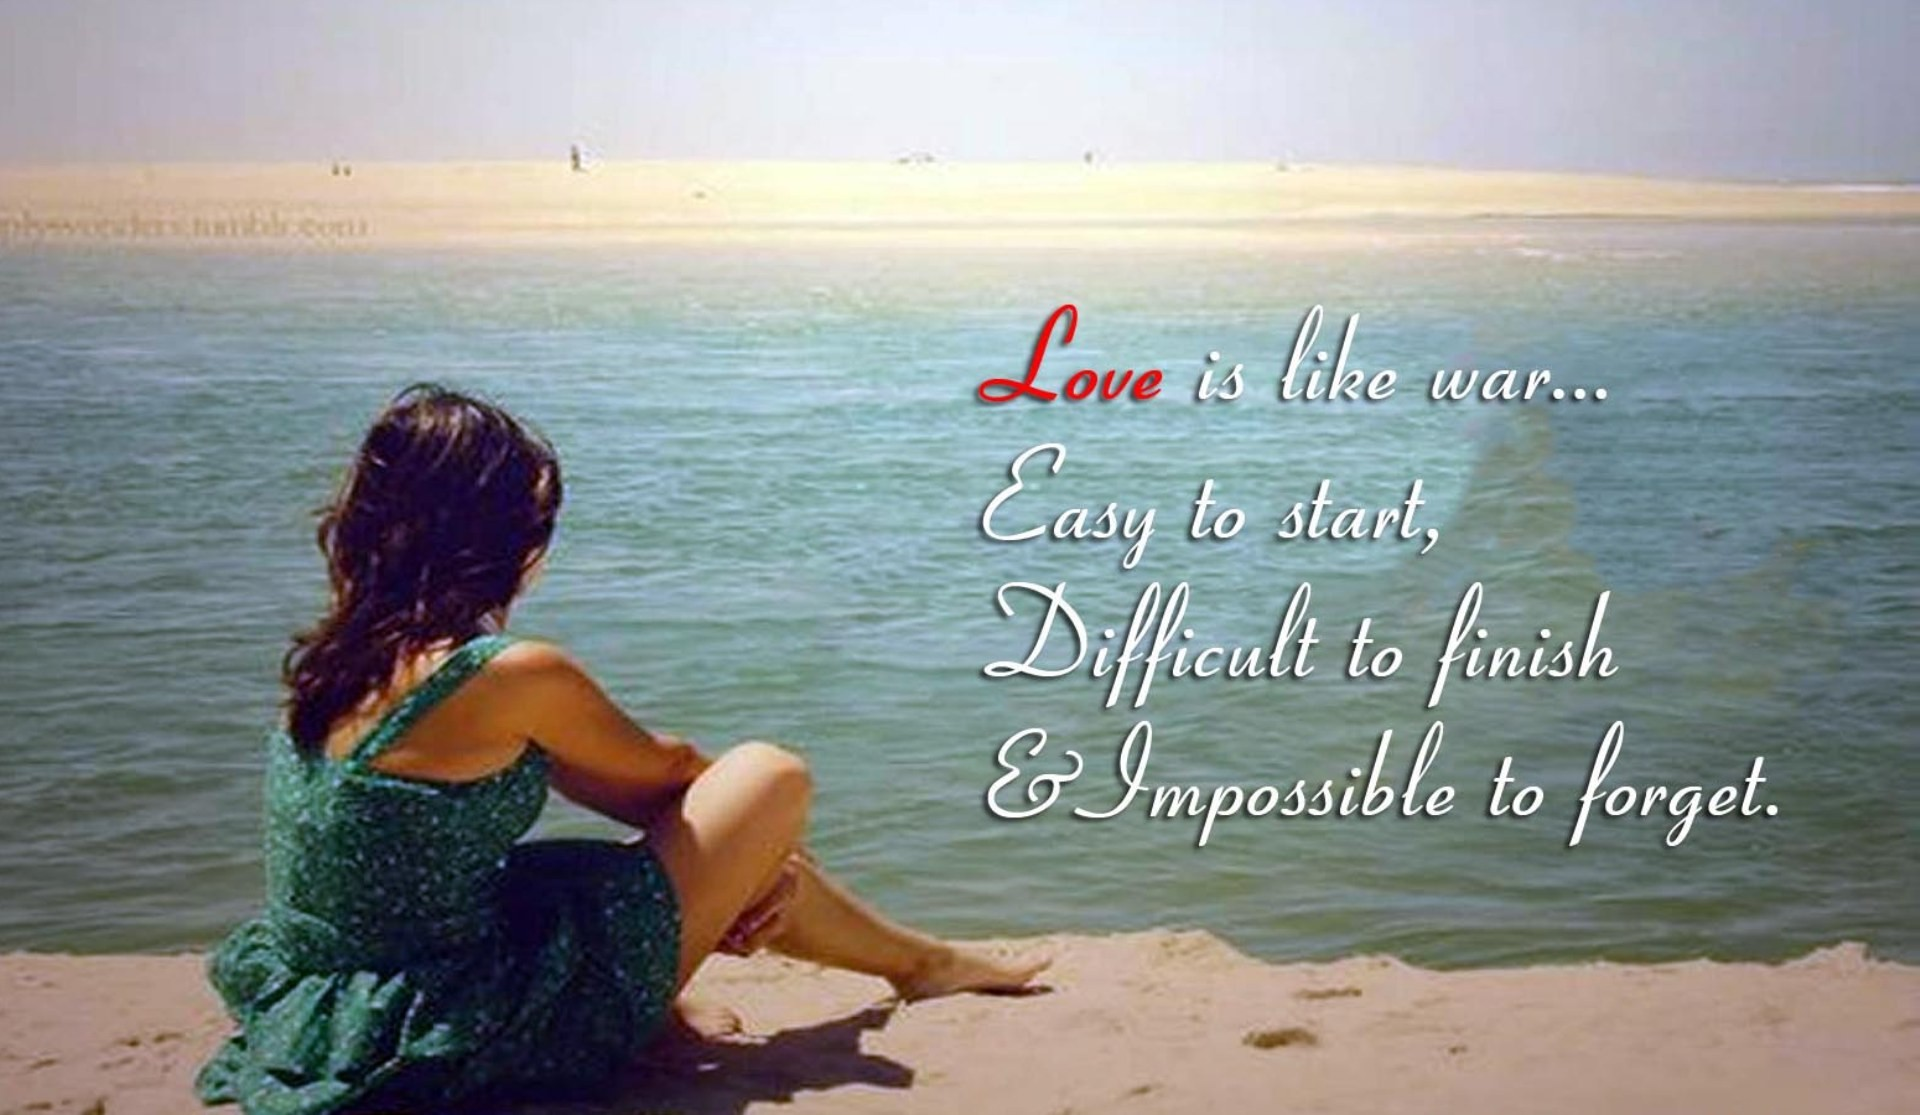 Romantic Wallpaper With Quotes   Data Src Free Cute - Quotes About Sea Side - HD Wallpaper